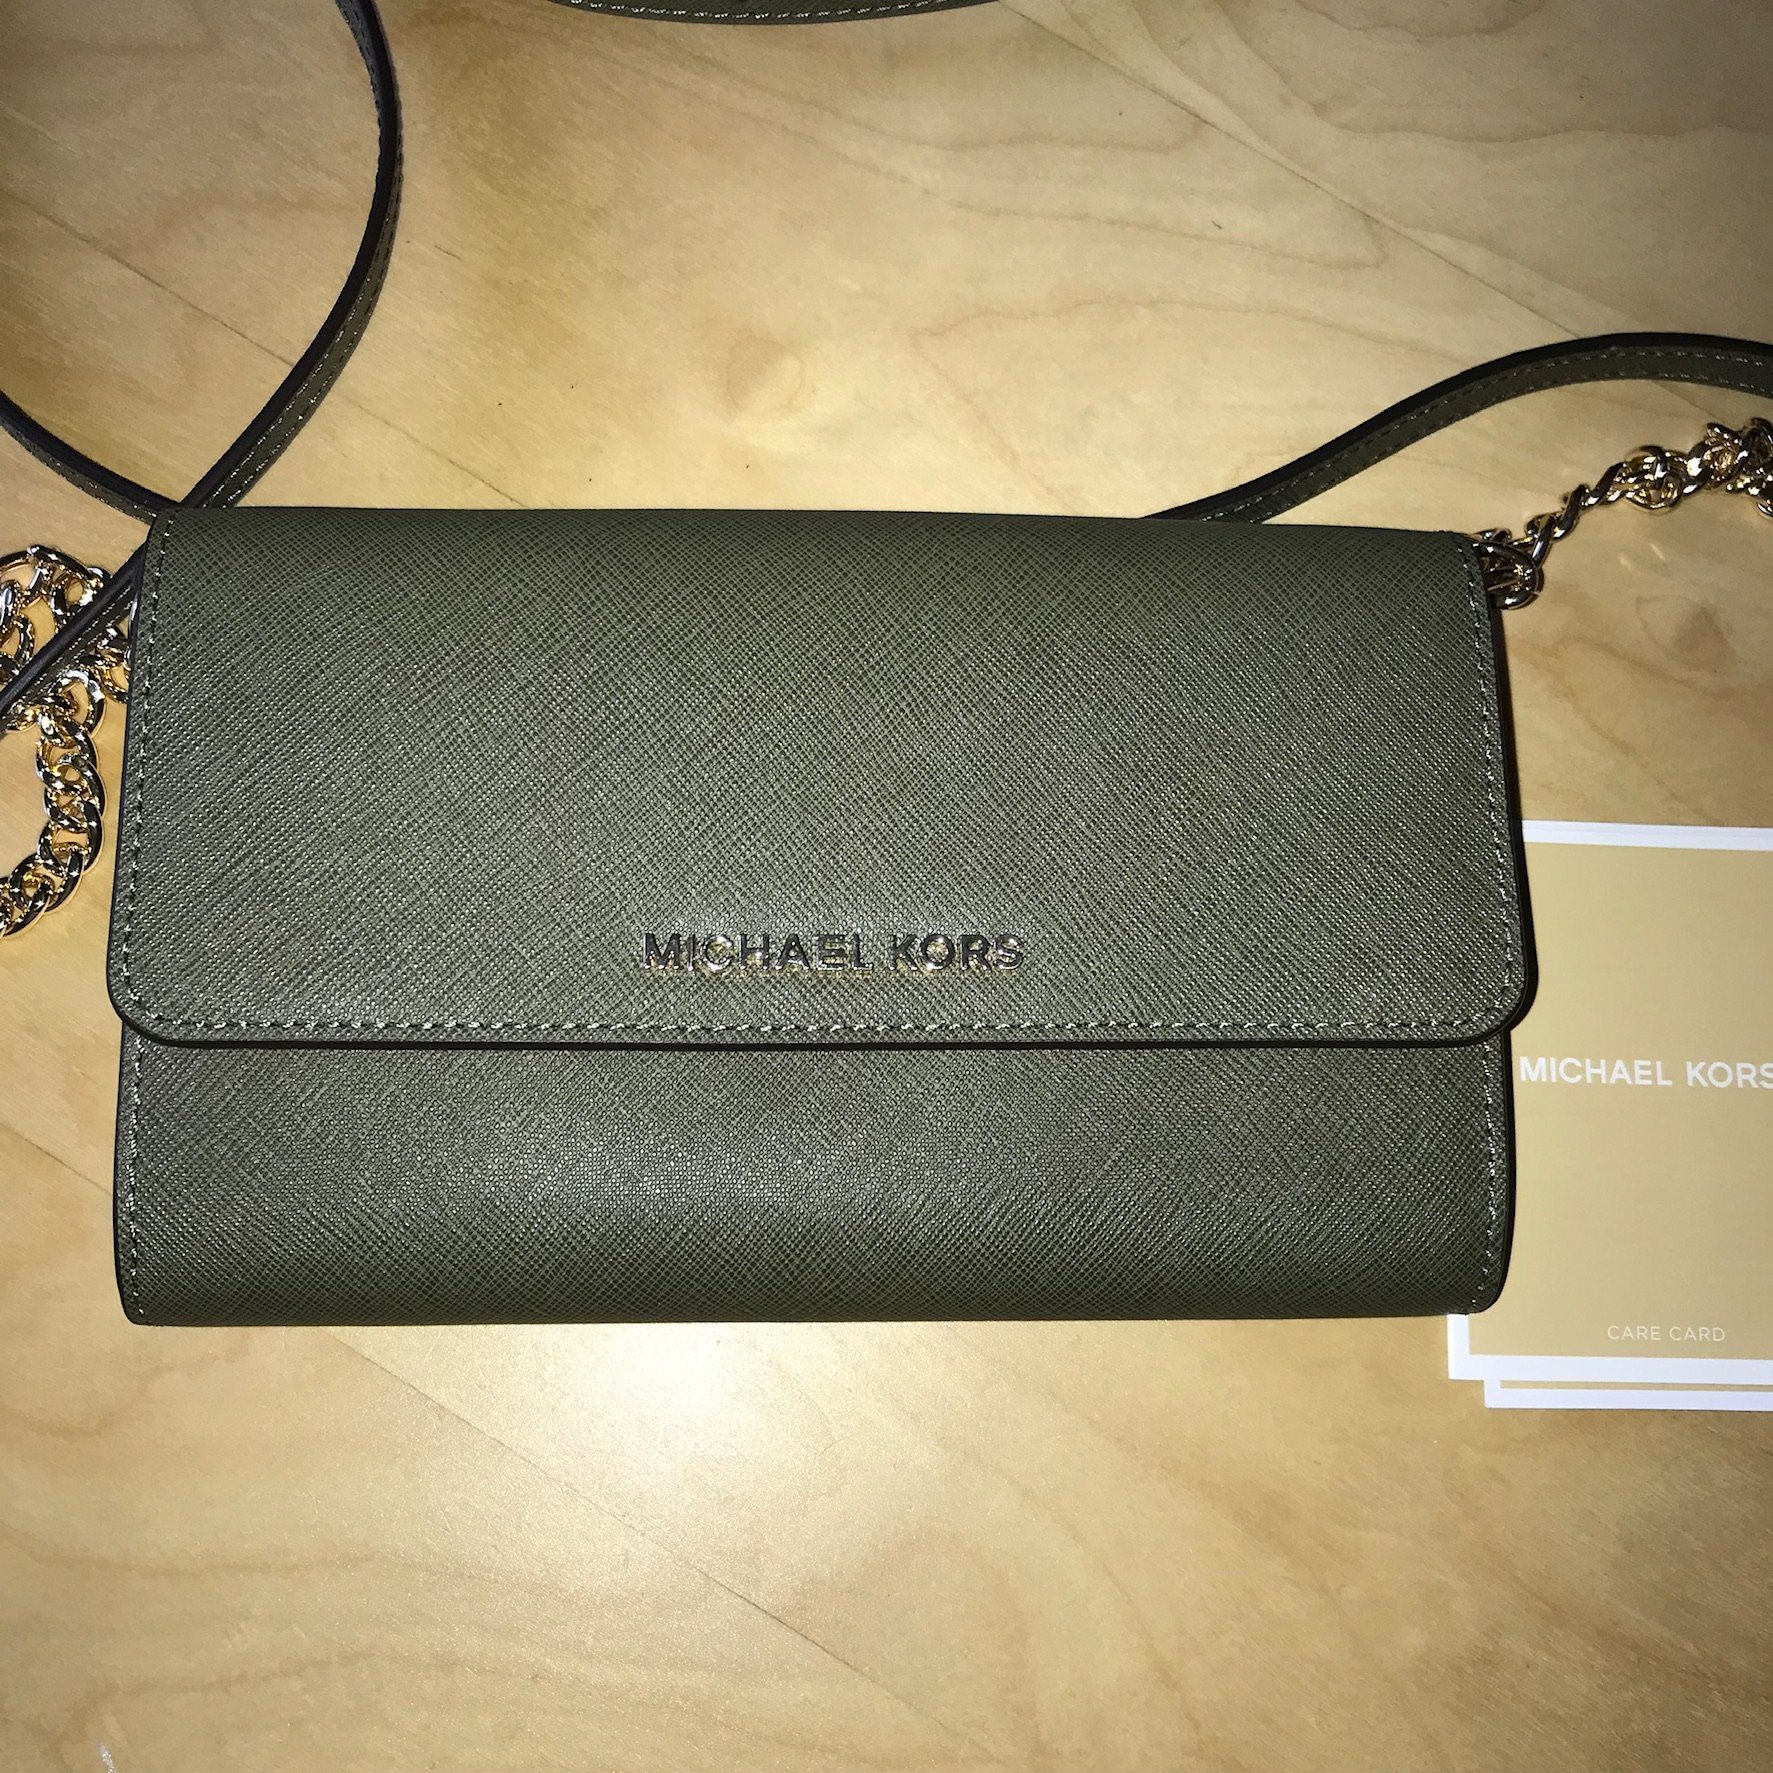 71809d488 @@NY MICHAEL KORS JET SET TRAVEL OLIVEGRÖN CROSSBODY@@